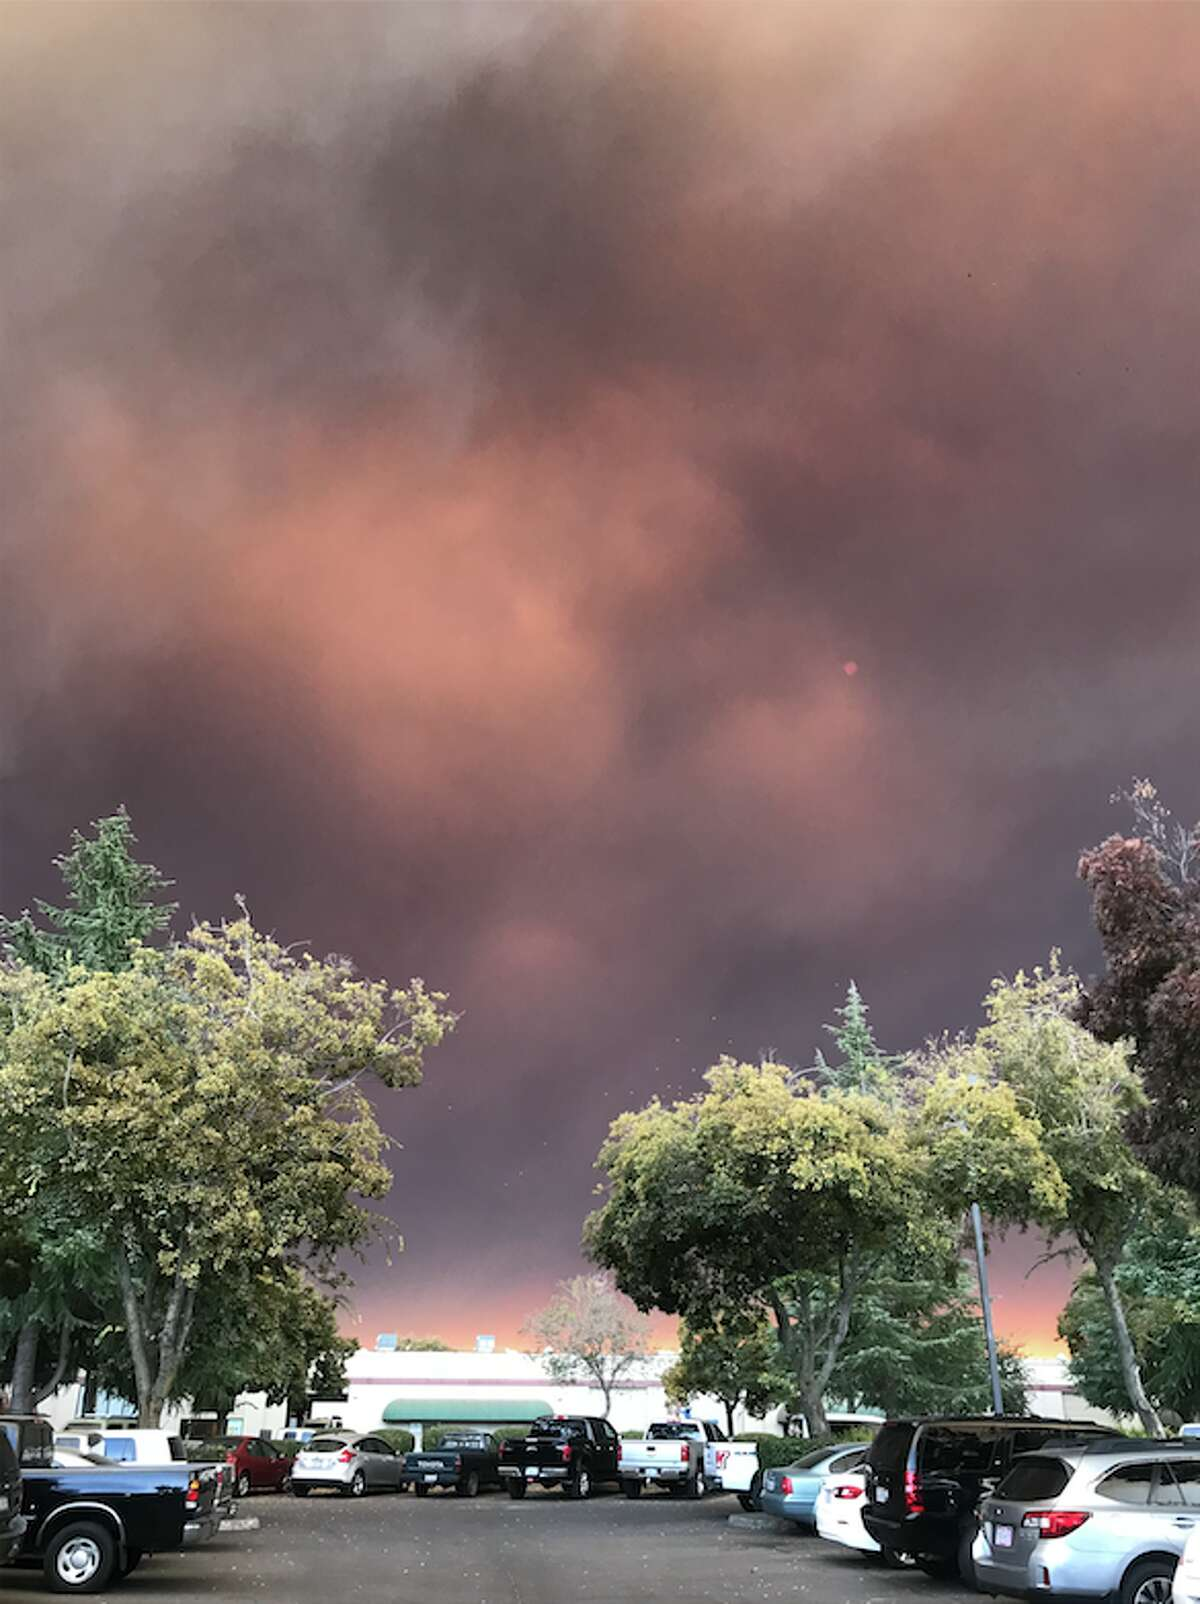 View of the Camp Fire taken by a resident of nearby Chico. Nov. 8, 2018